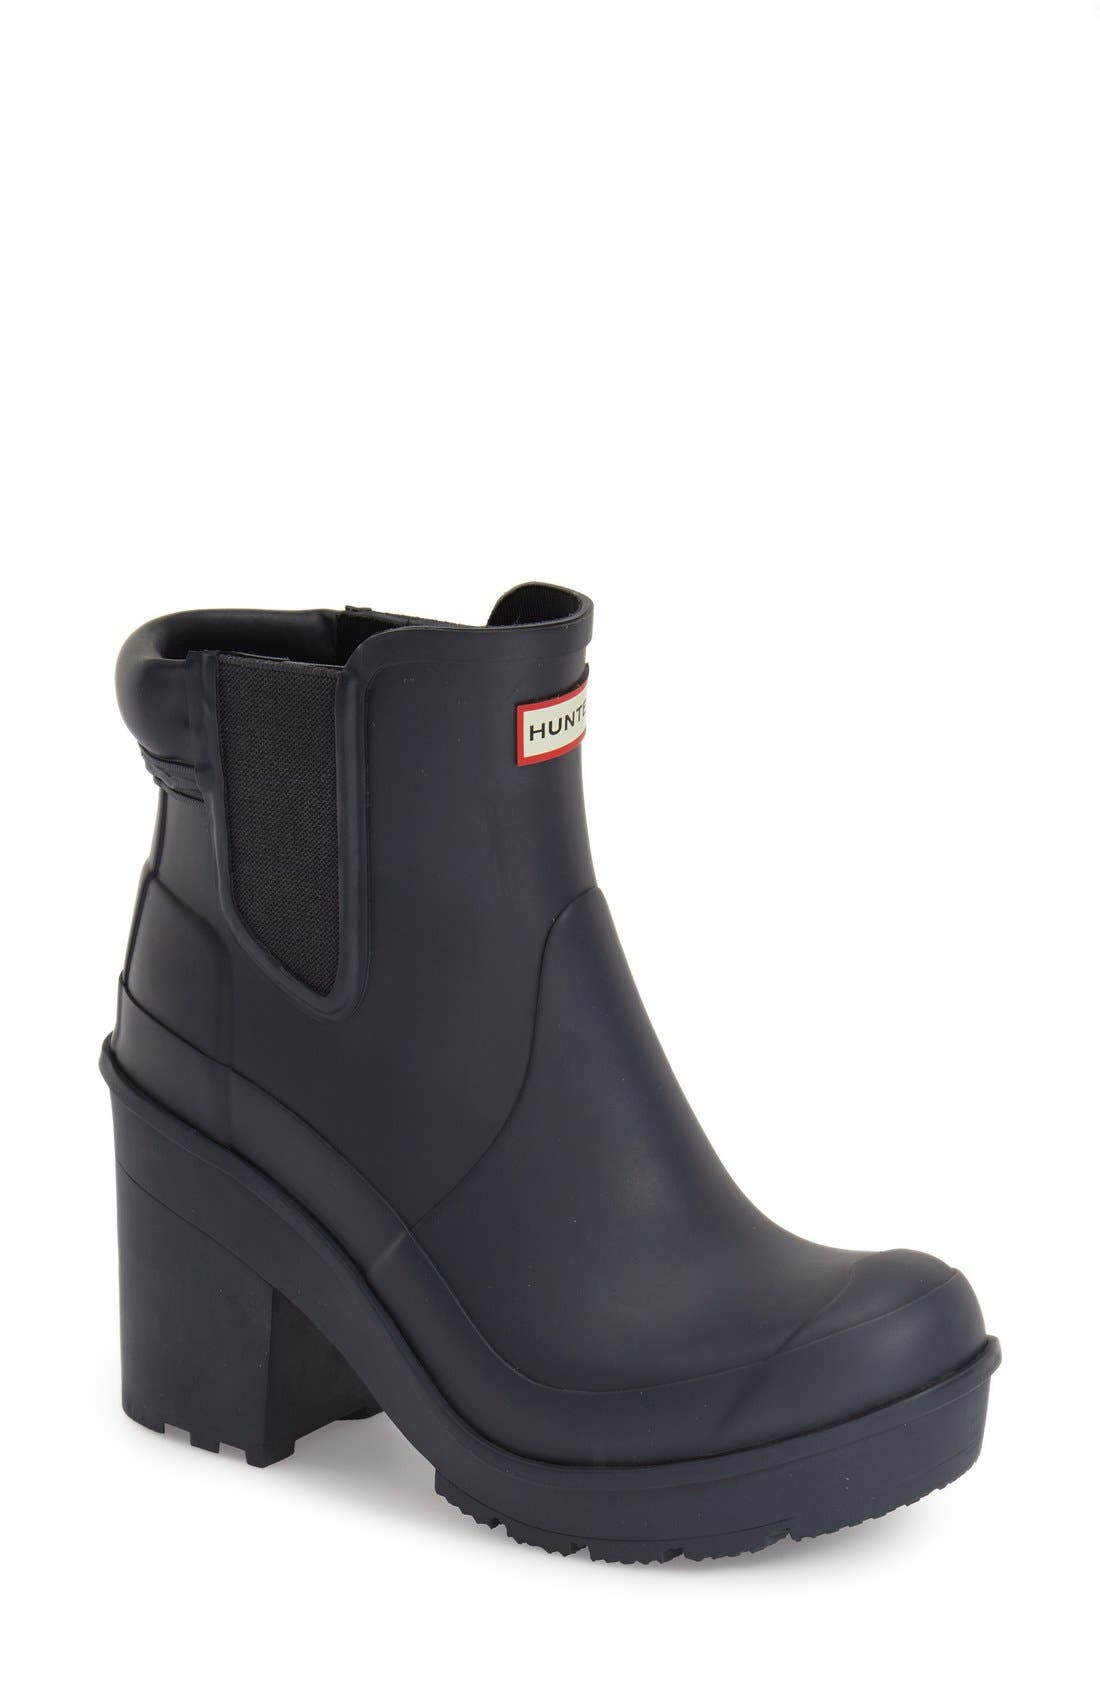 Alternate Image 1 Selected - Hunter 'Original - Block Heel' Chelsea Rain Boot (Women)